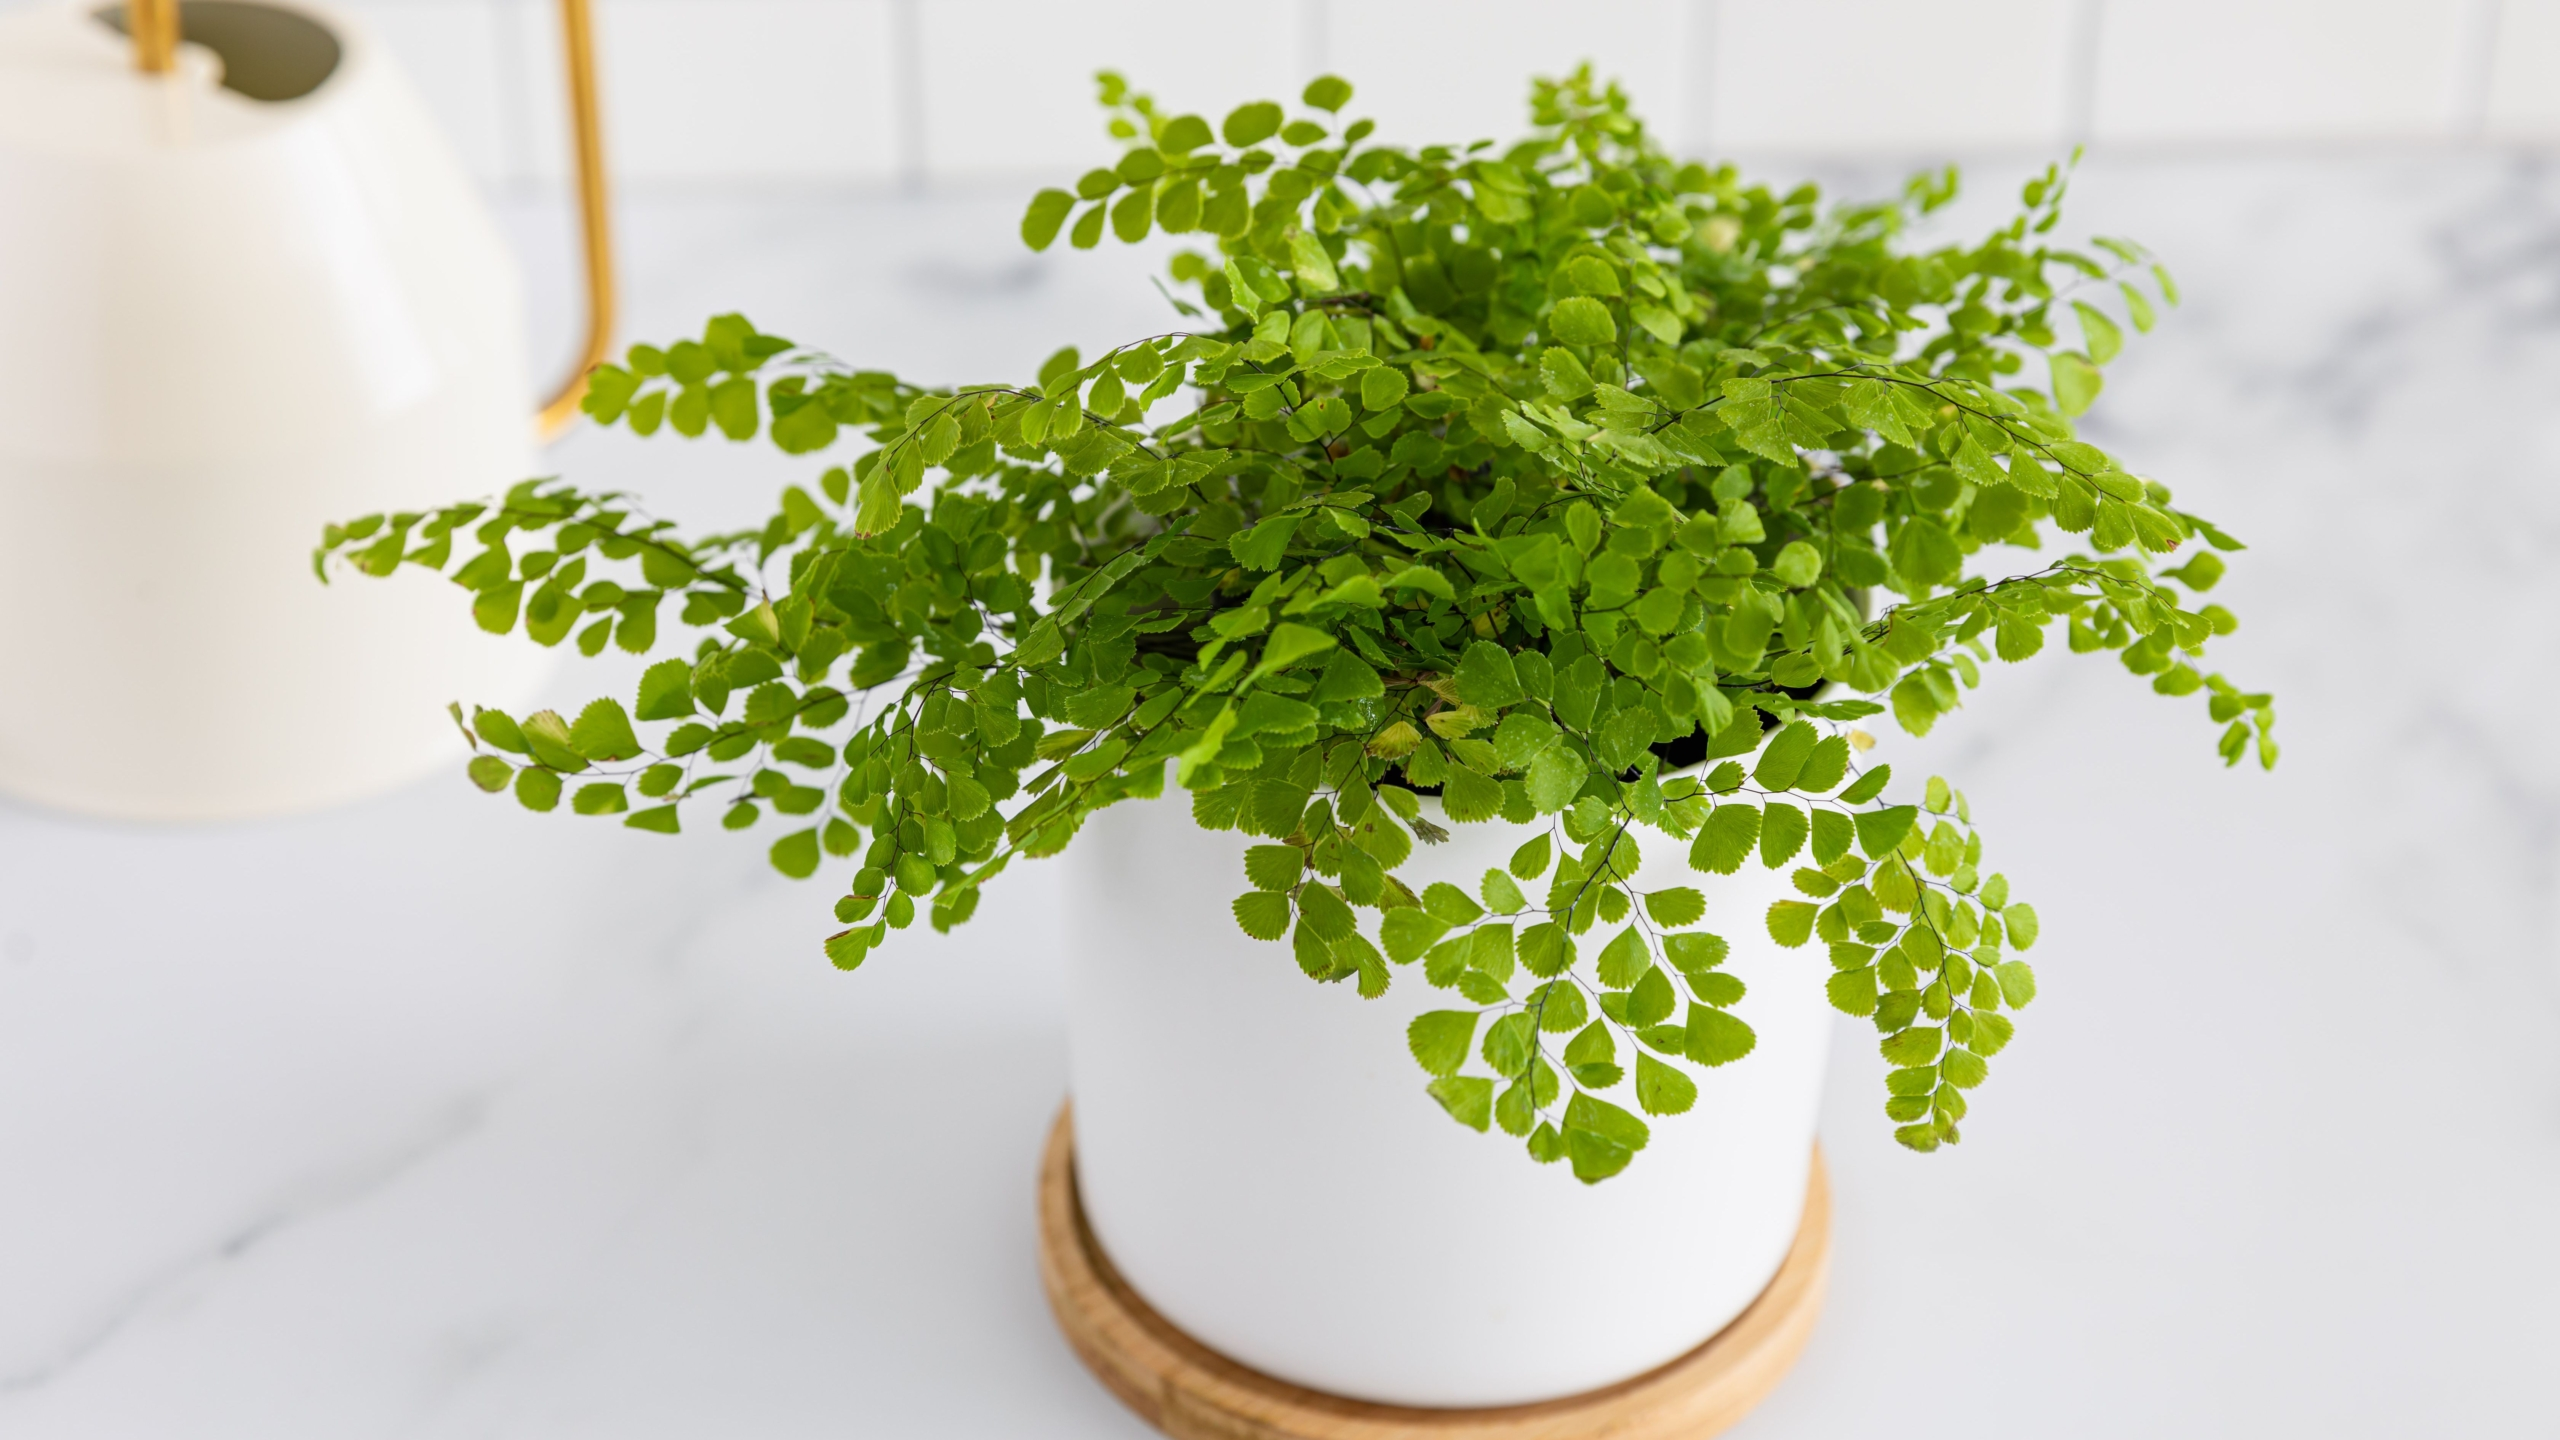 How to Take Care of a Maidenhair Fern